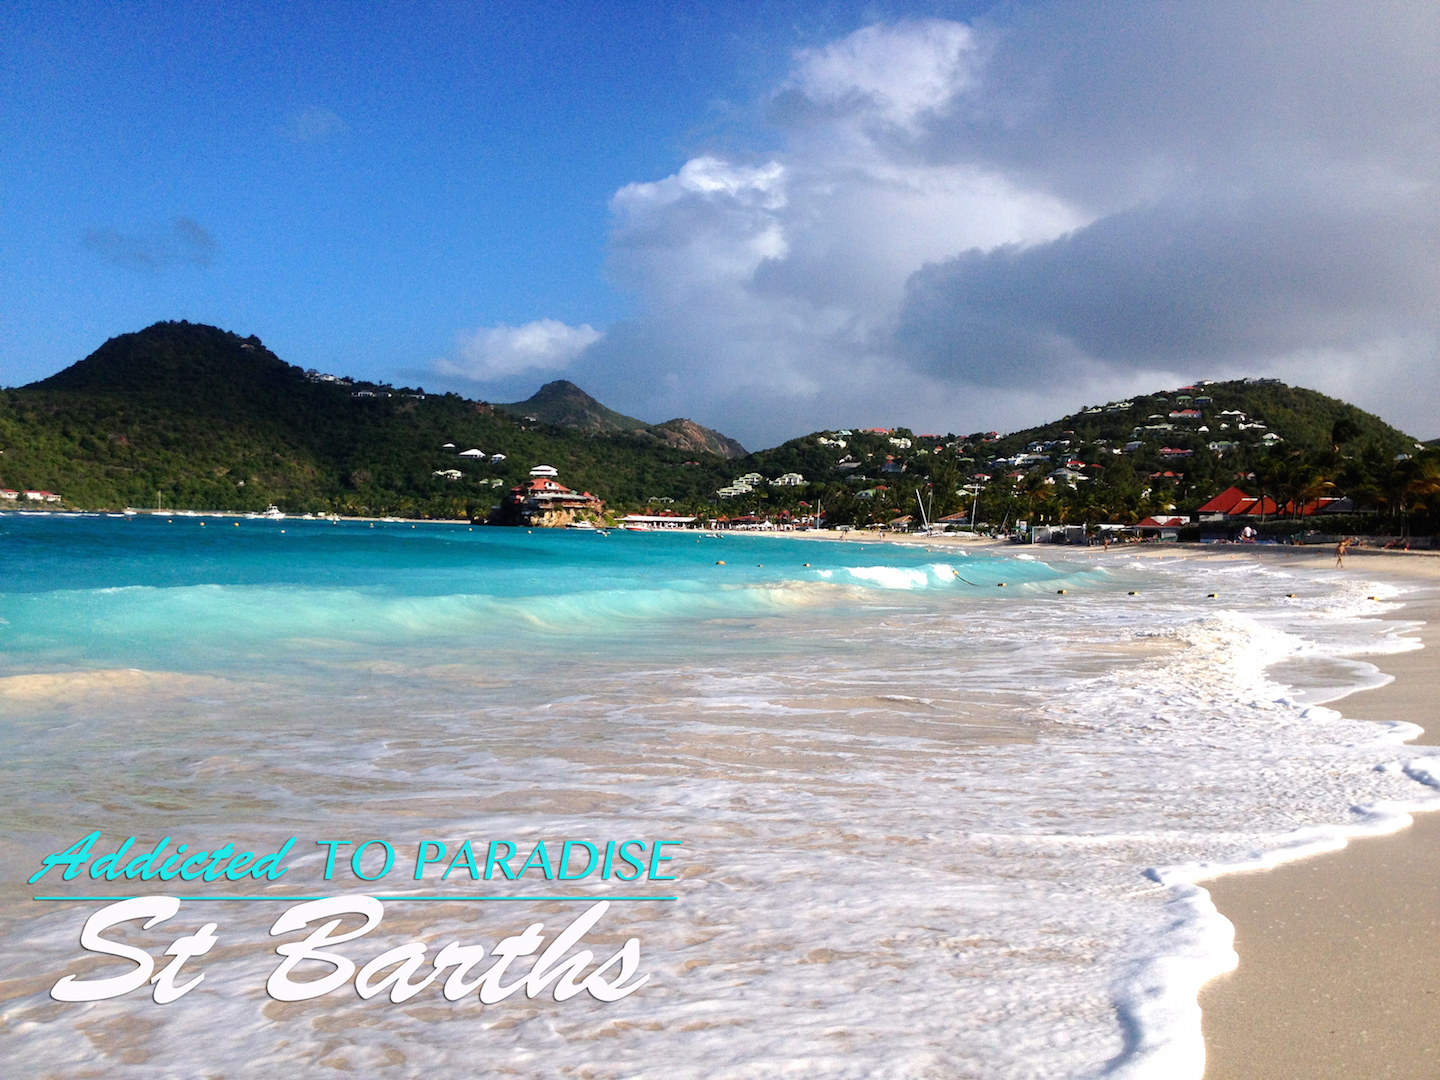 addicted-to-paradise-st-barths